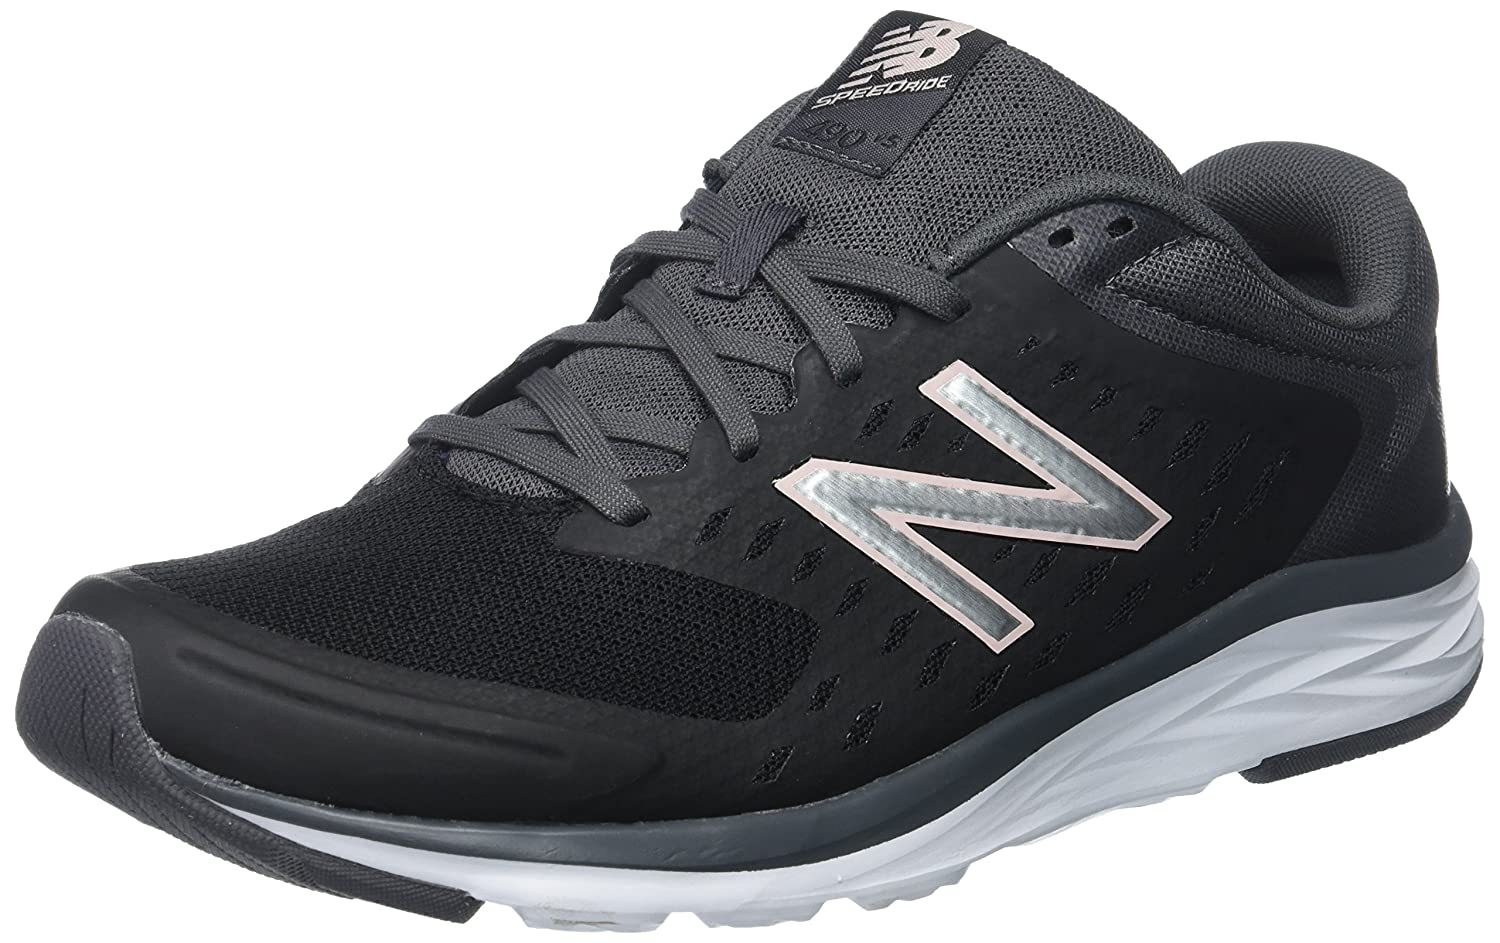 New Balance Women's 490V5 Running Shoe B01N1I1666 10.5 D US|Black/Magnet